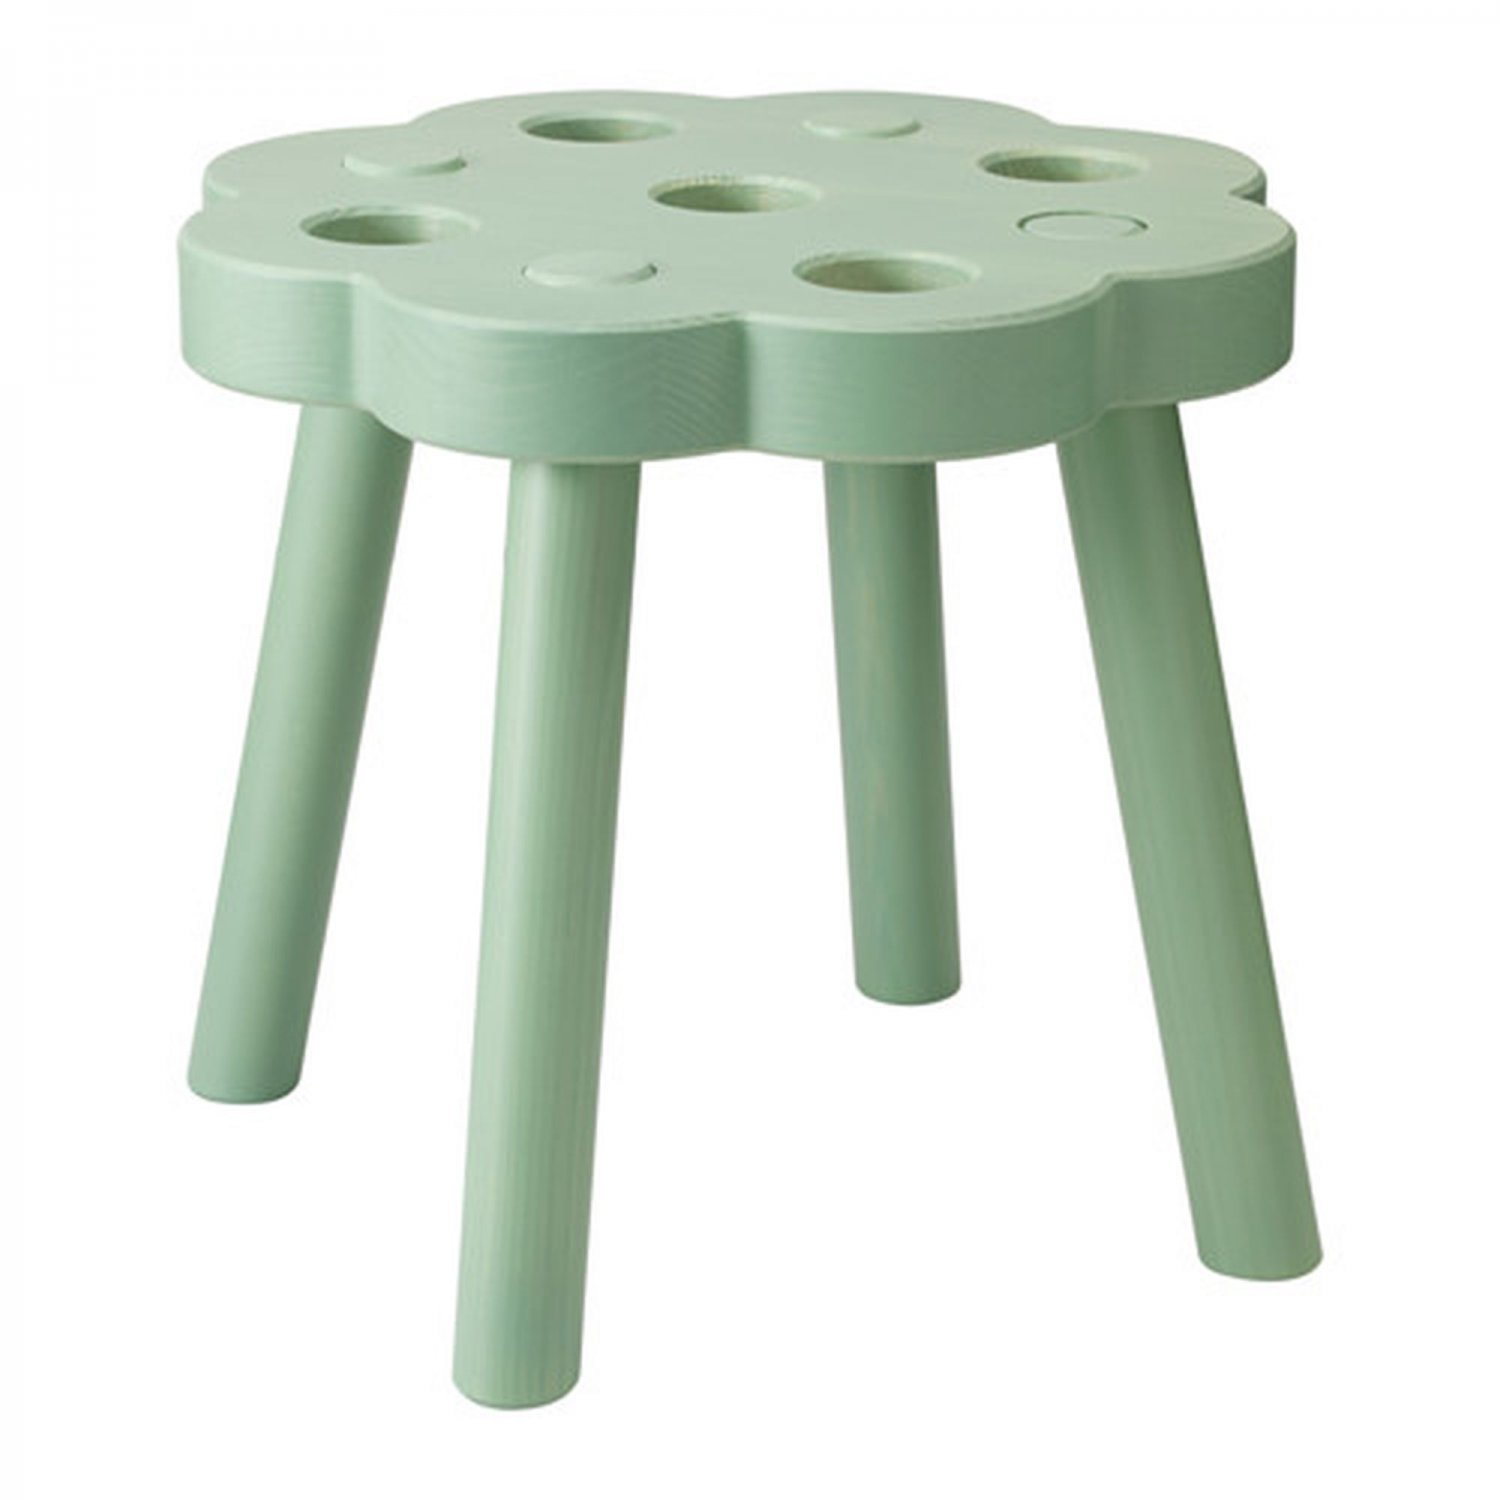 #3E5134 IKEA RYSSBY GREEN Wooden STOOL Chair Footstool Solid Wood with 1500x1500 px of Most Effective Ikea Wood Stool 15001500 wallpaper @ avoidforclosure.info